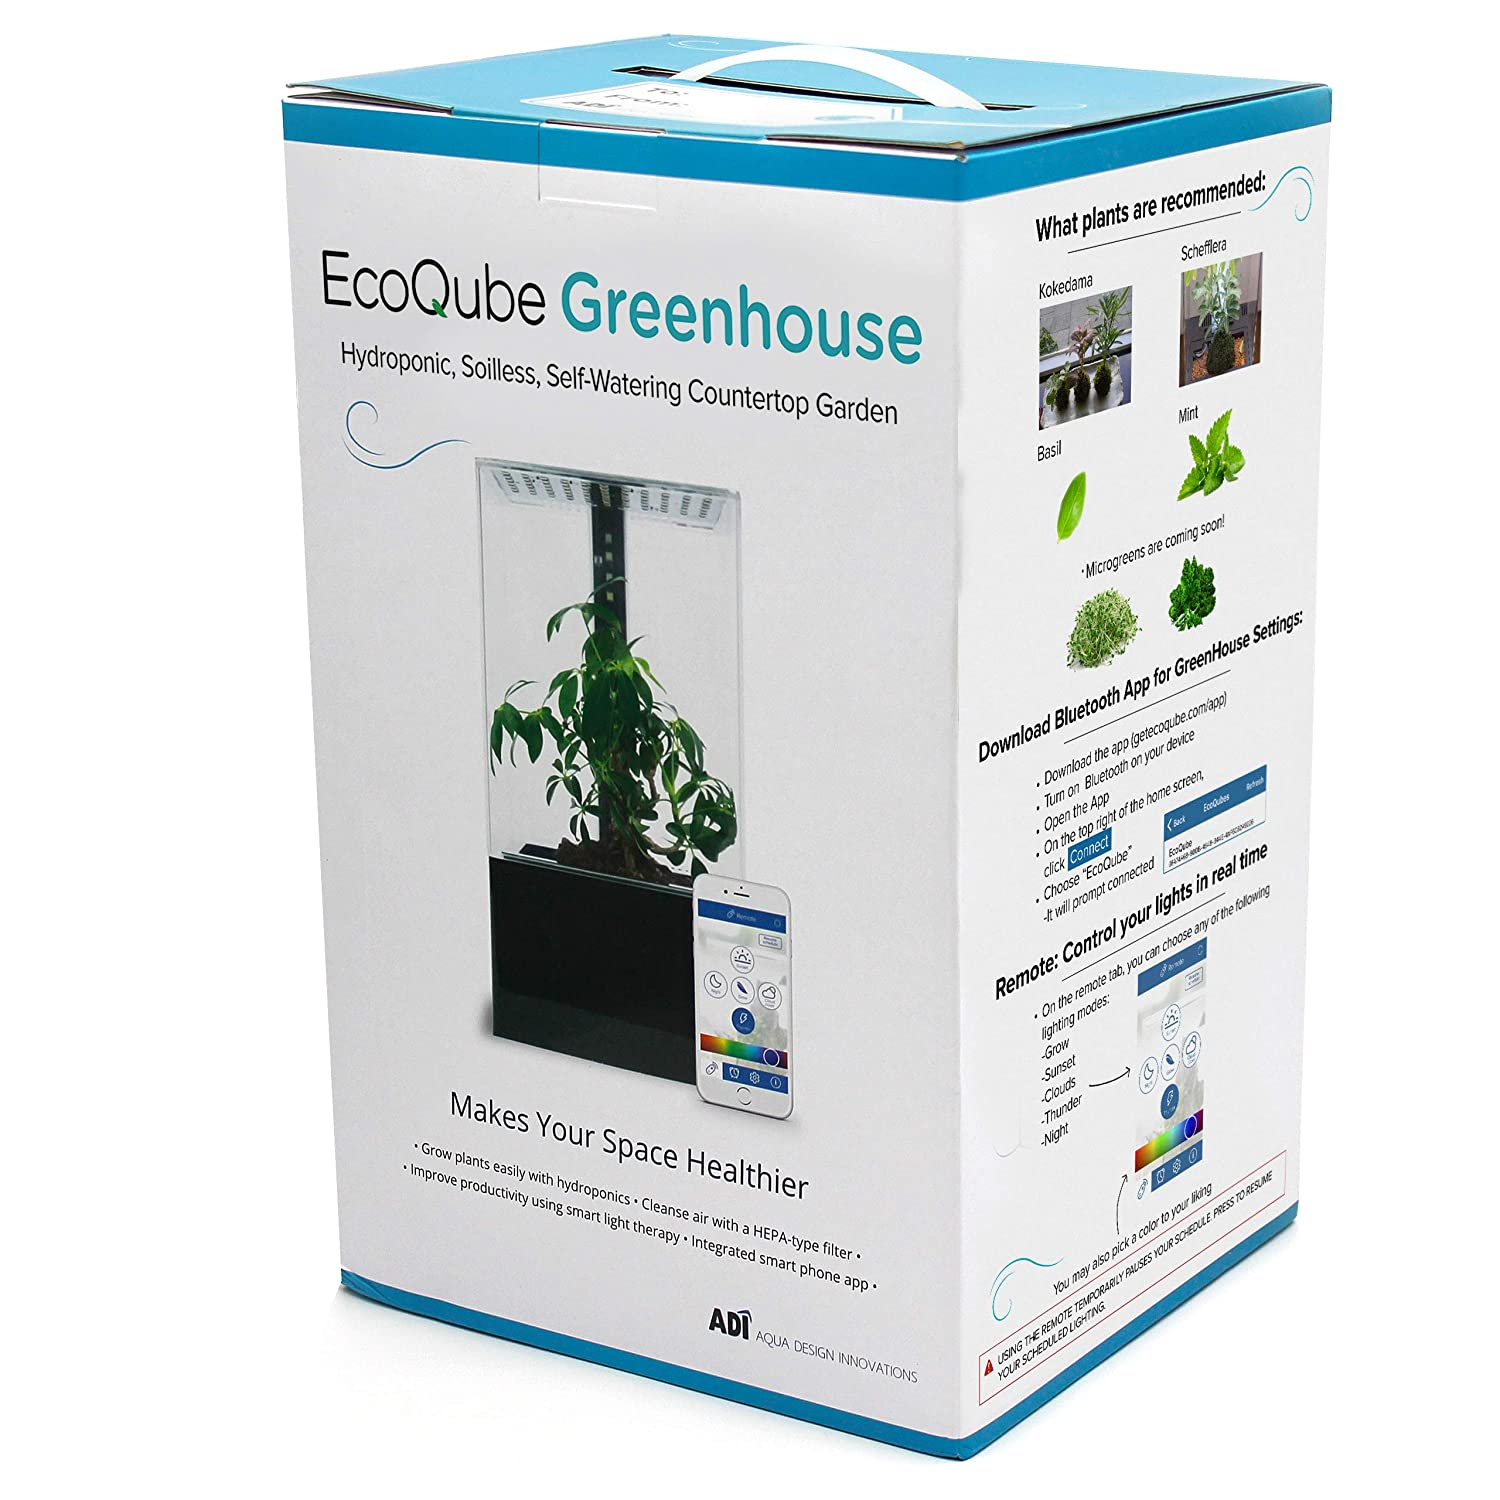 EcoQube Greenhouse - Self-Watering Hydroponic Garden Desktop Decor with Smart LED Grow Lights